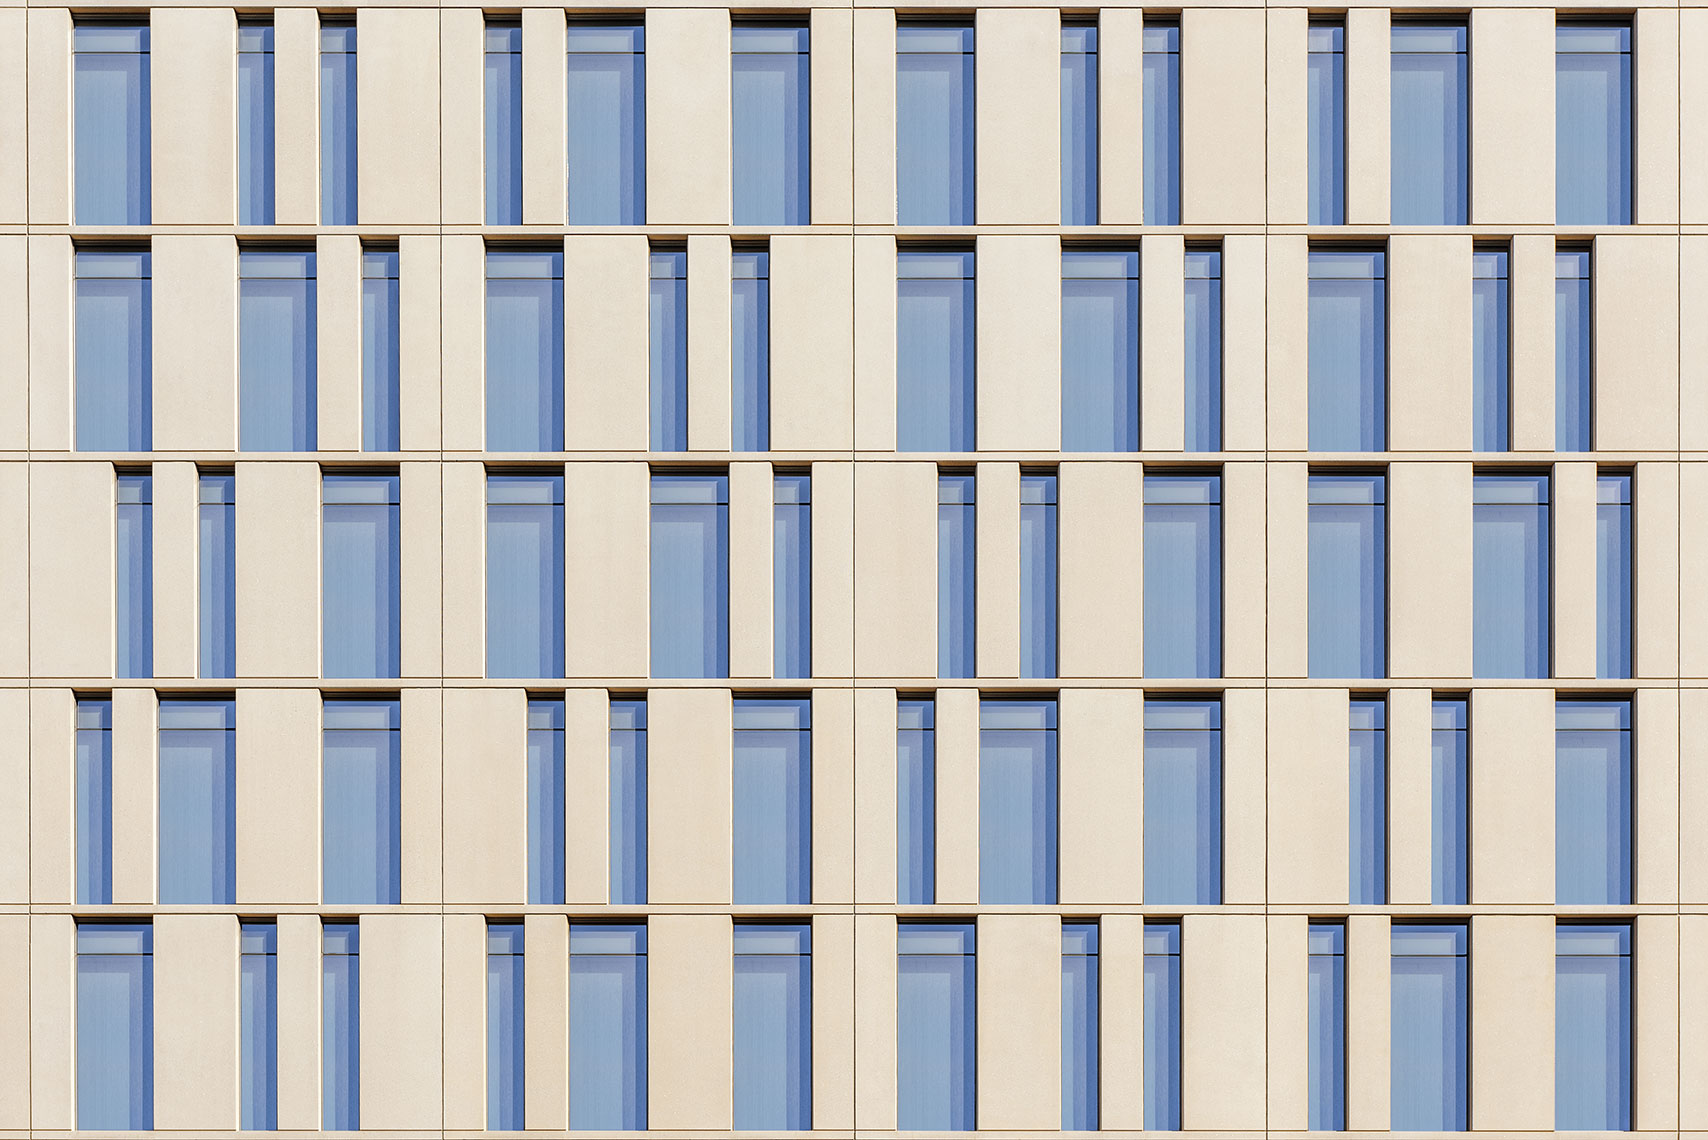 LAPD Headquarters Architecture Abstract Facade Los Angeles